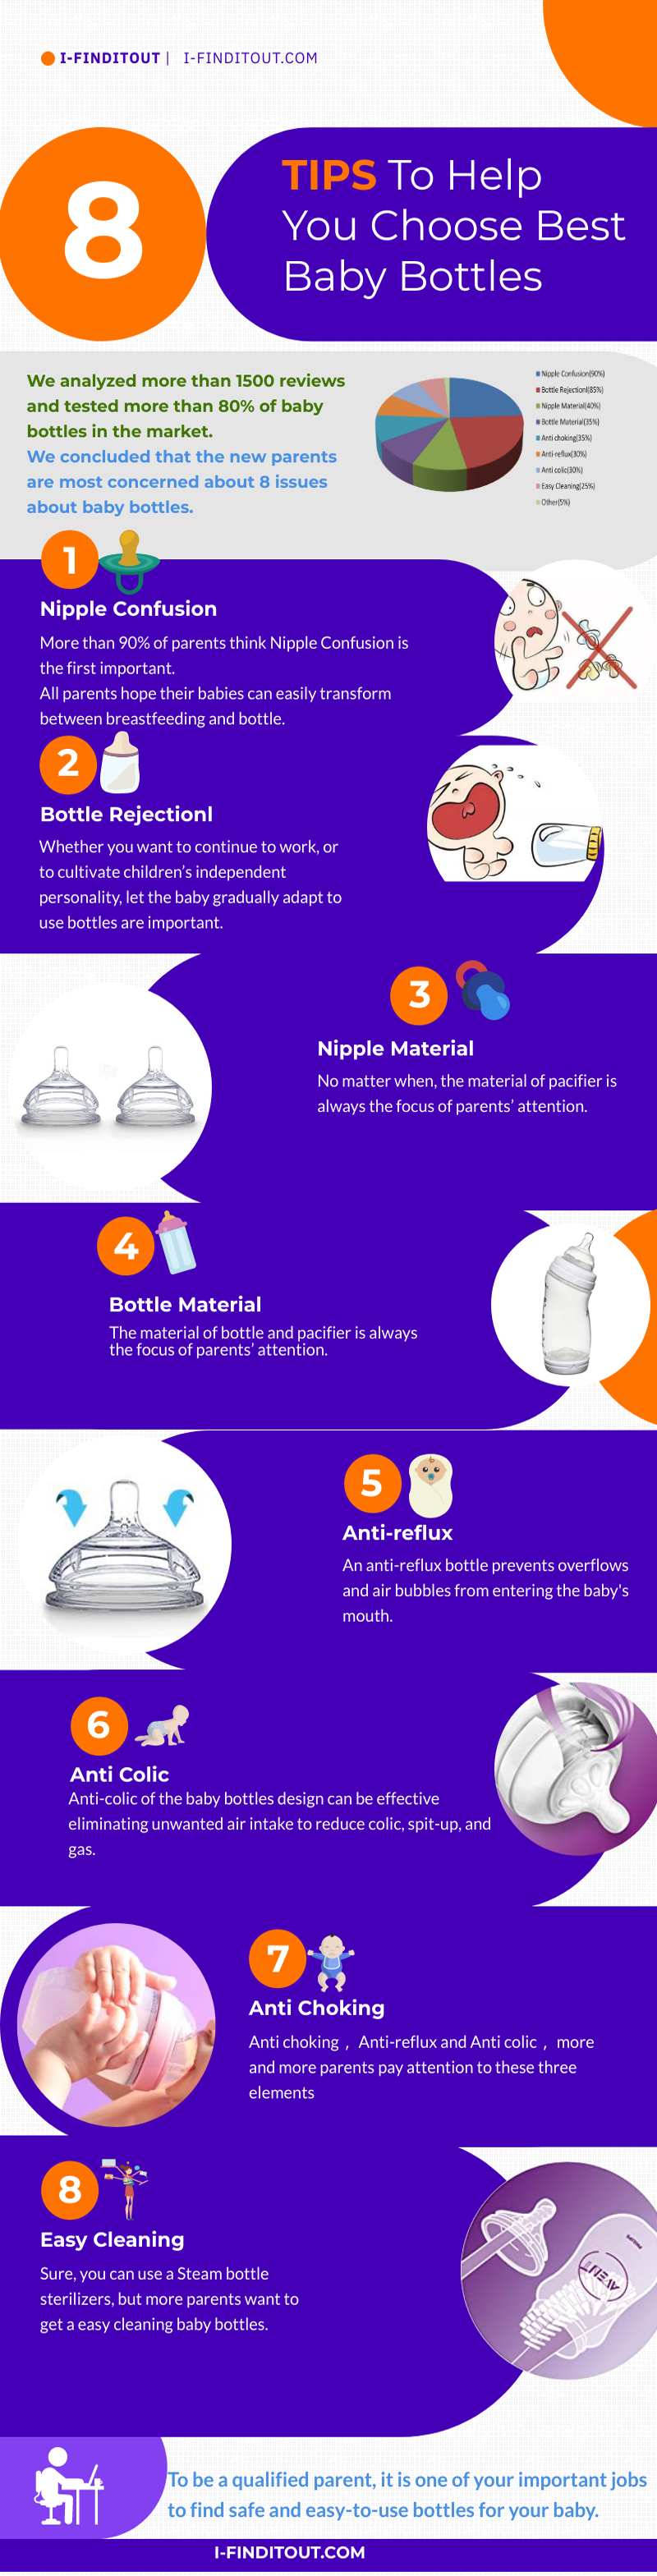 8 Tips To Help You Choose Best Baby Bottles